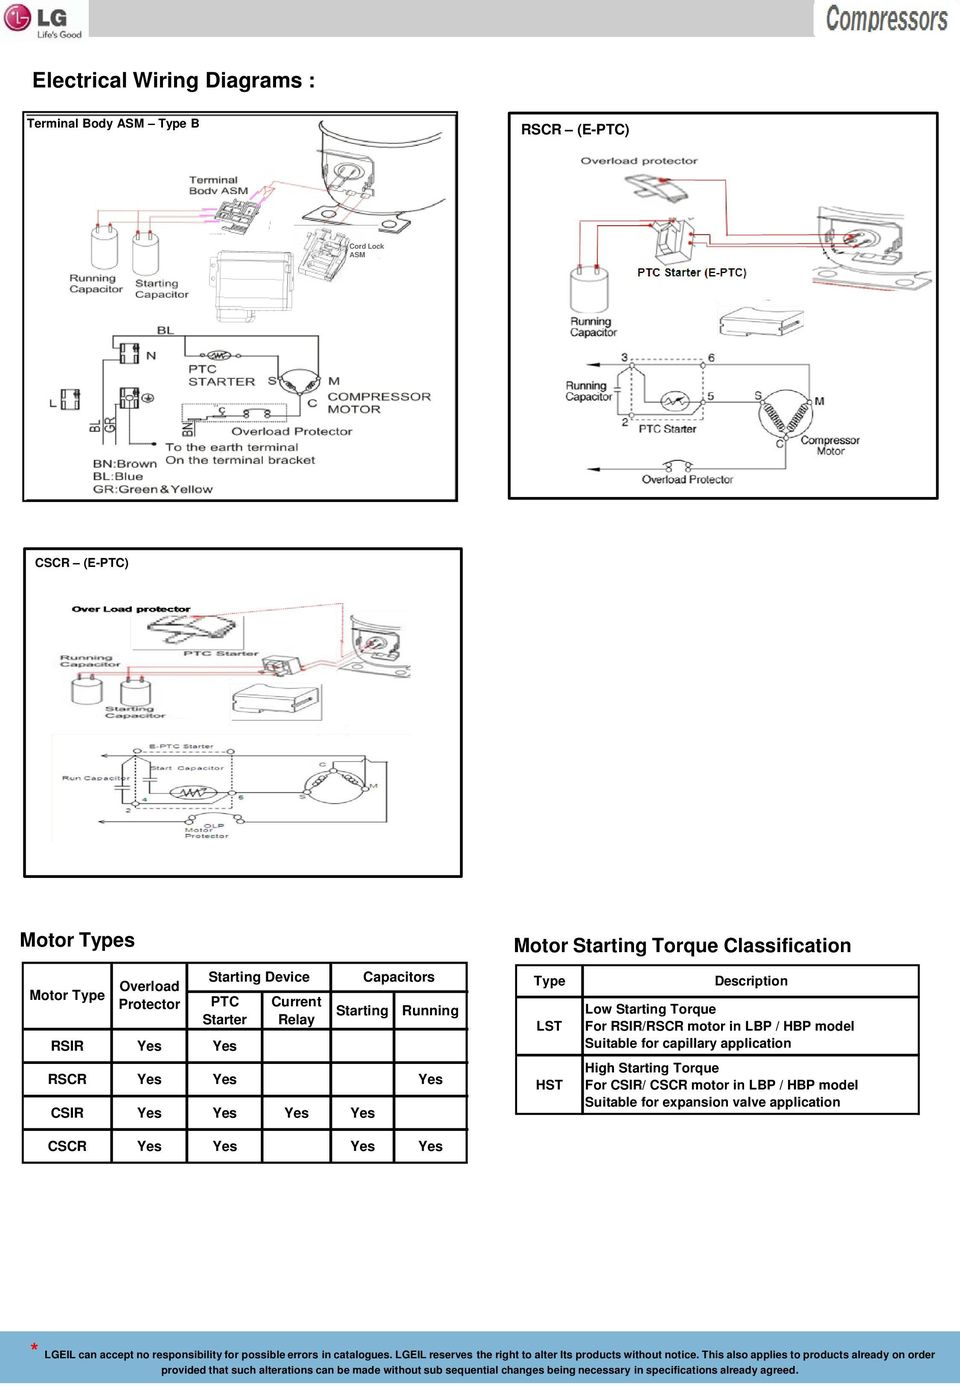 hight resolution of cscr wiring diagram wiring librarystarting running rscr yes yes yes csir yes yes yes yes cscr